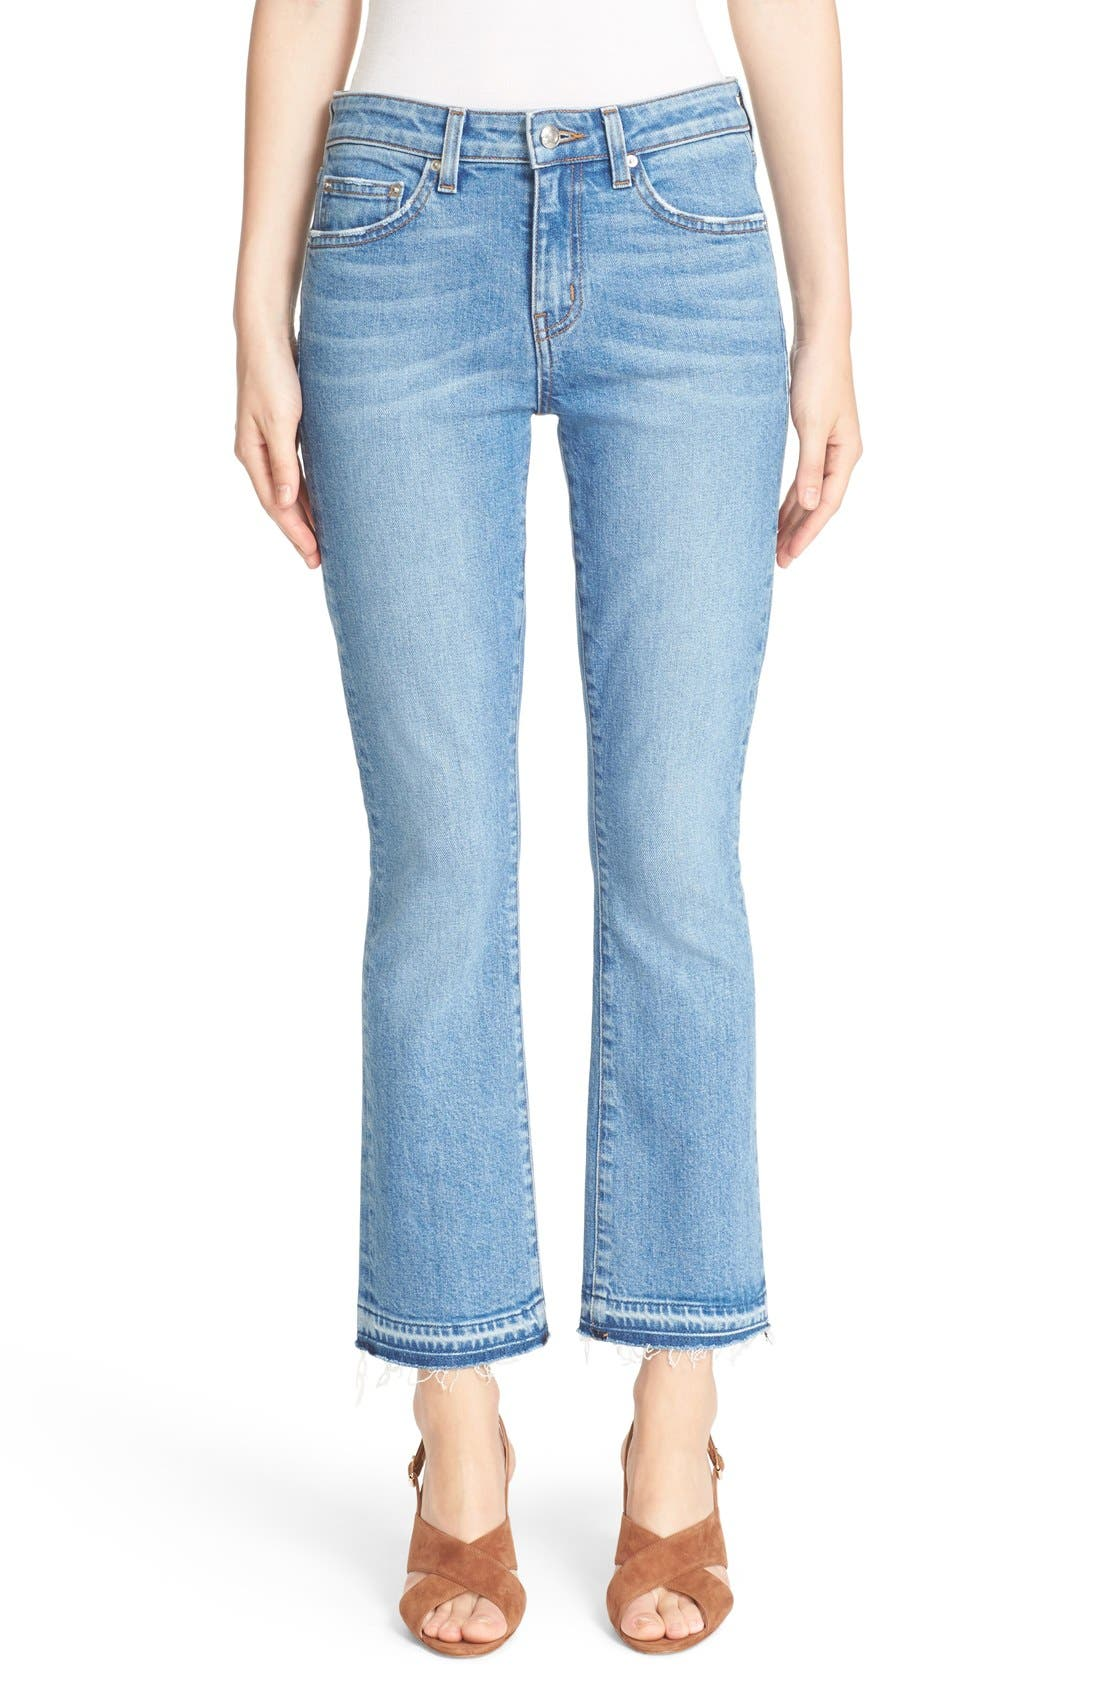 'Gia' Crop Flare Jeans,                             Main thumbnail 1, color,                             458